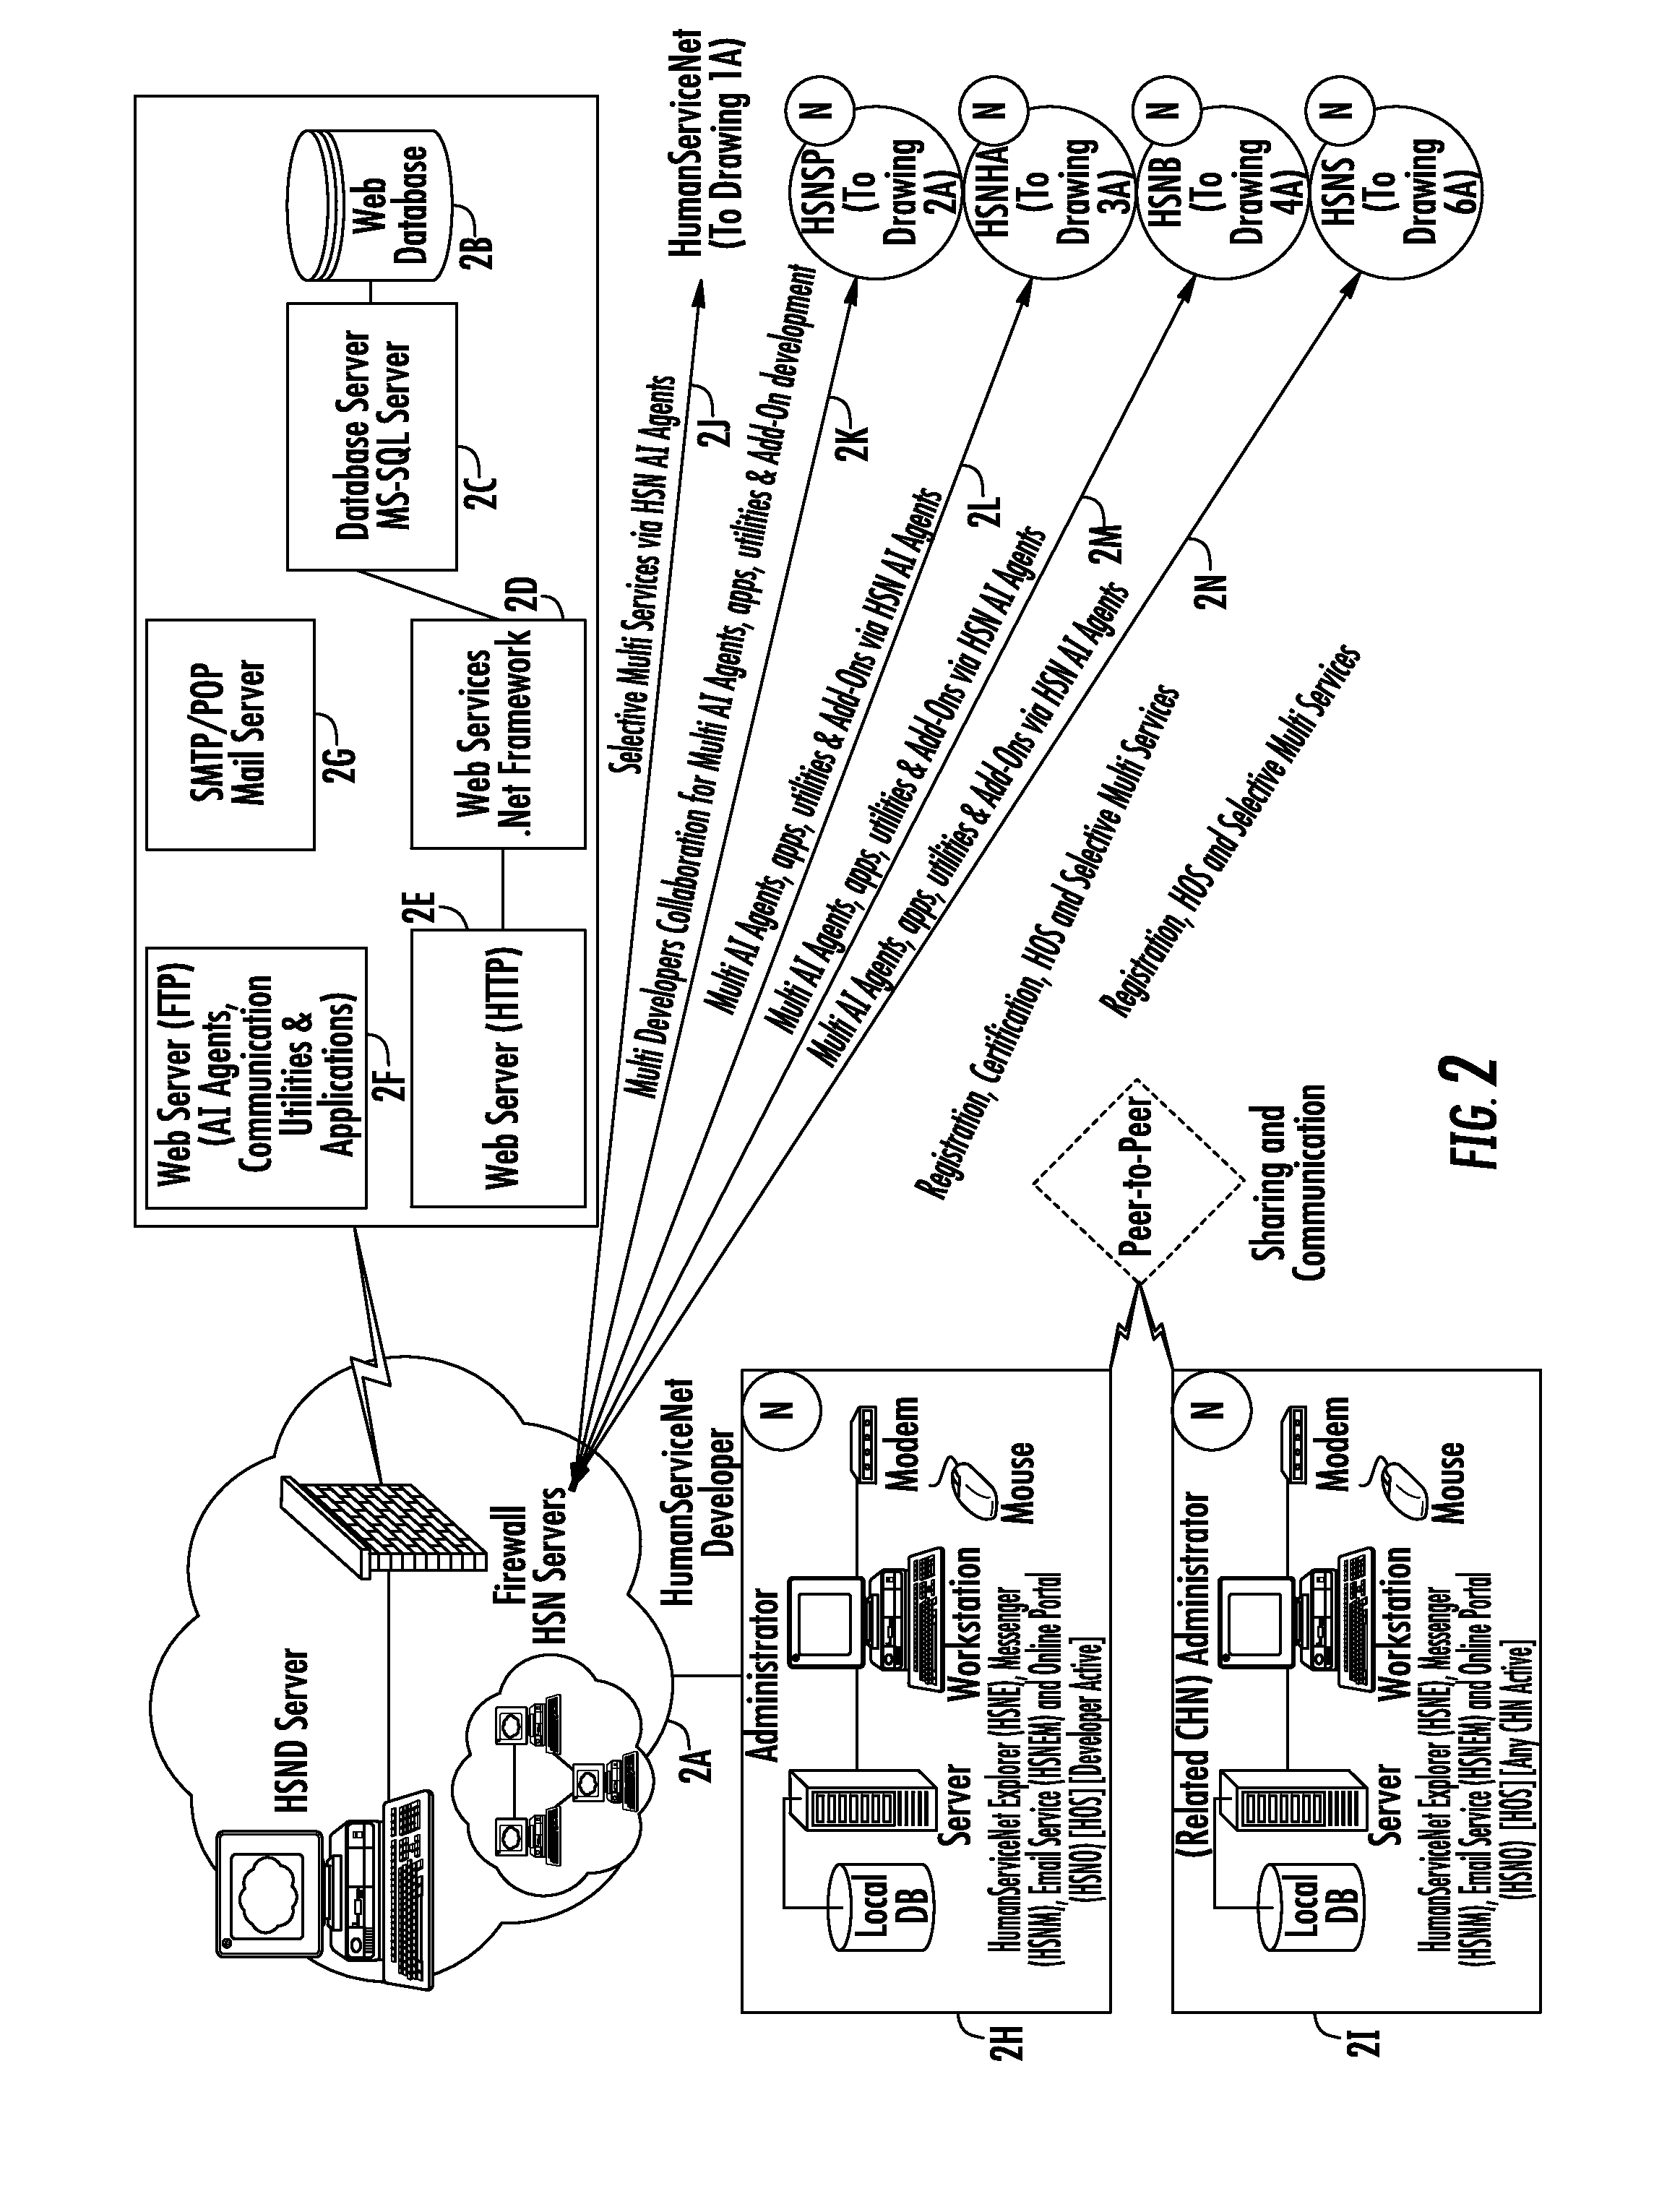 US20110231489A1 20110922 D00002 patent us20110231489 system and method for publishing, sharing on any ecommer template with ms sql database